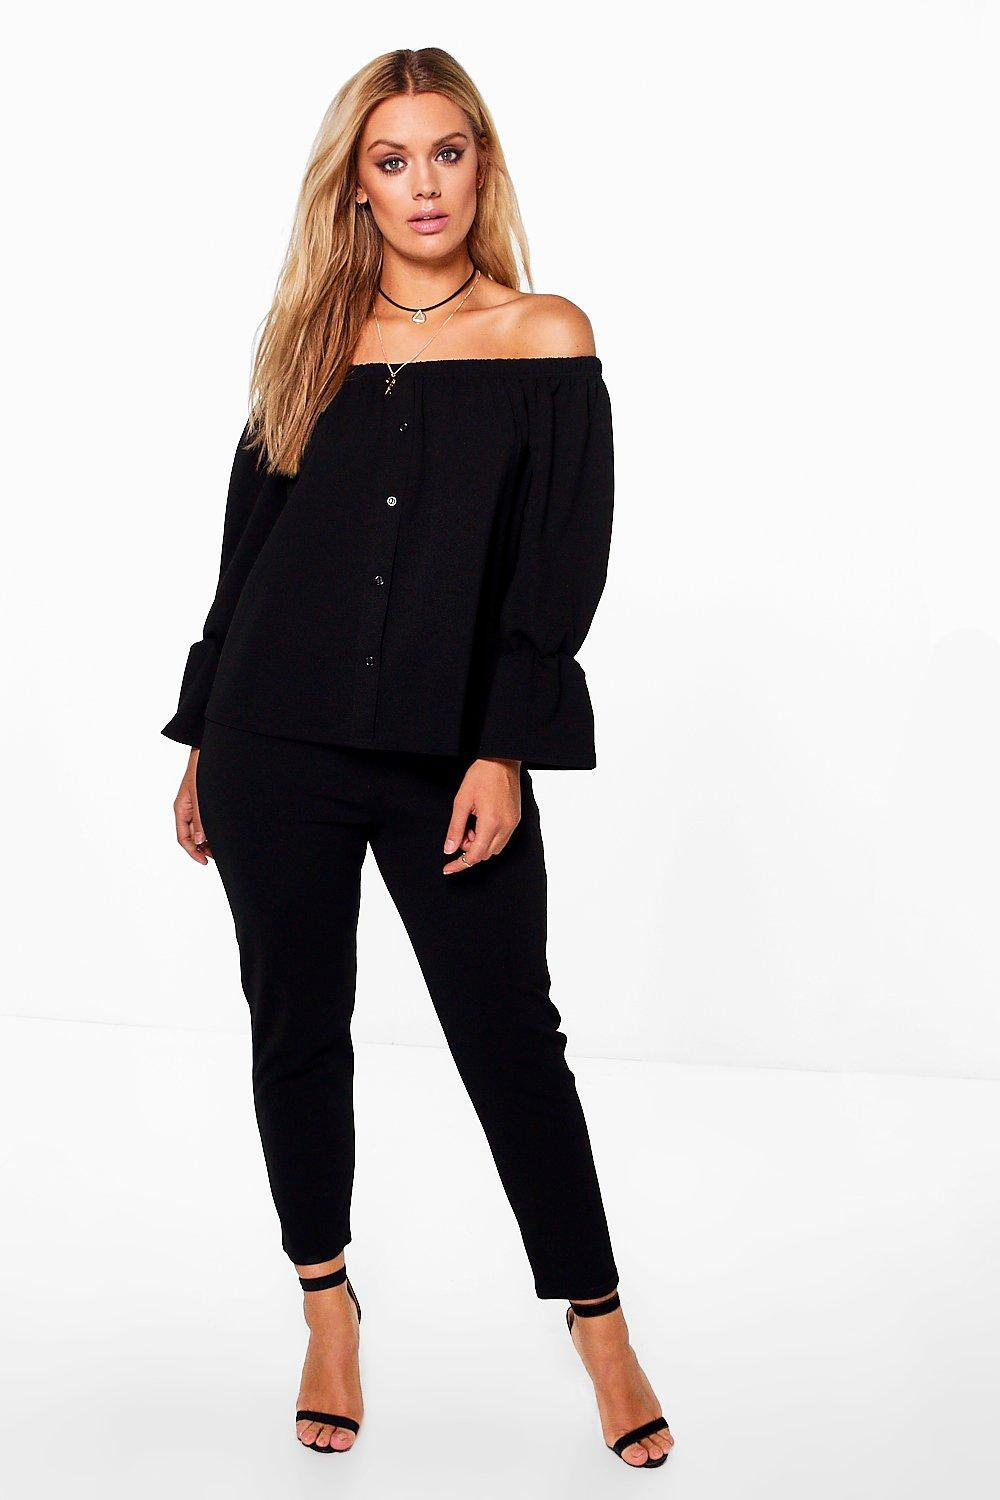 00dbb7659a8656 Lyst - Boohoo Plus Off The Shoulder Top + Pants Co-ord in Black